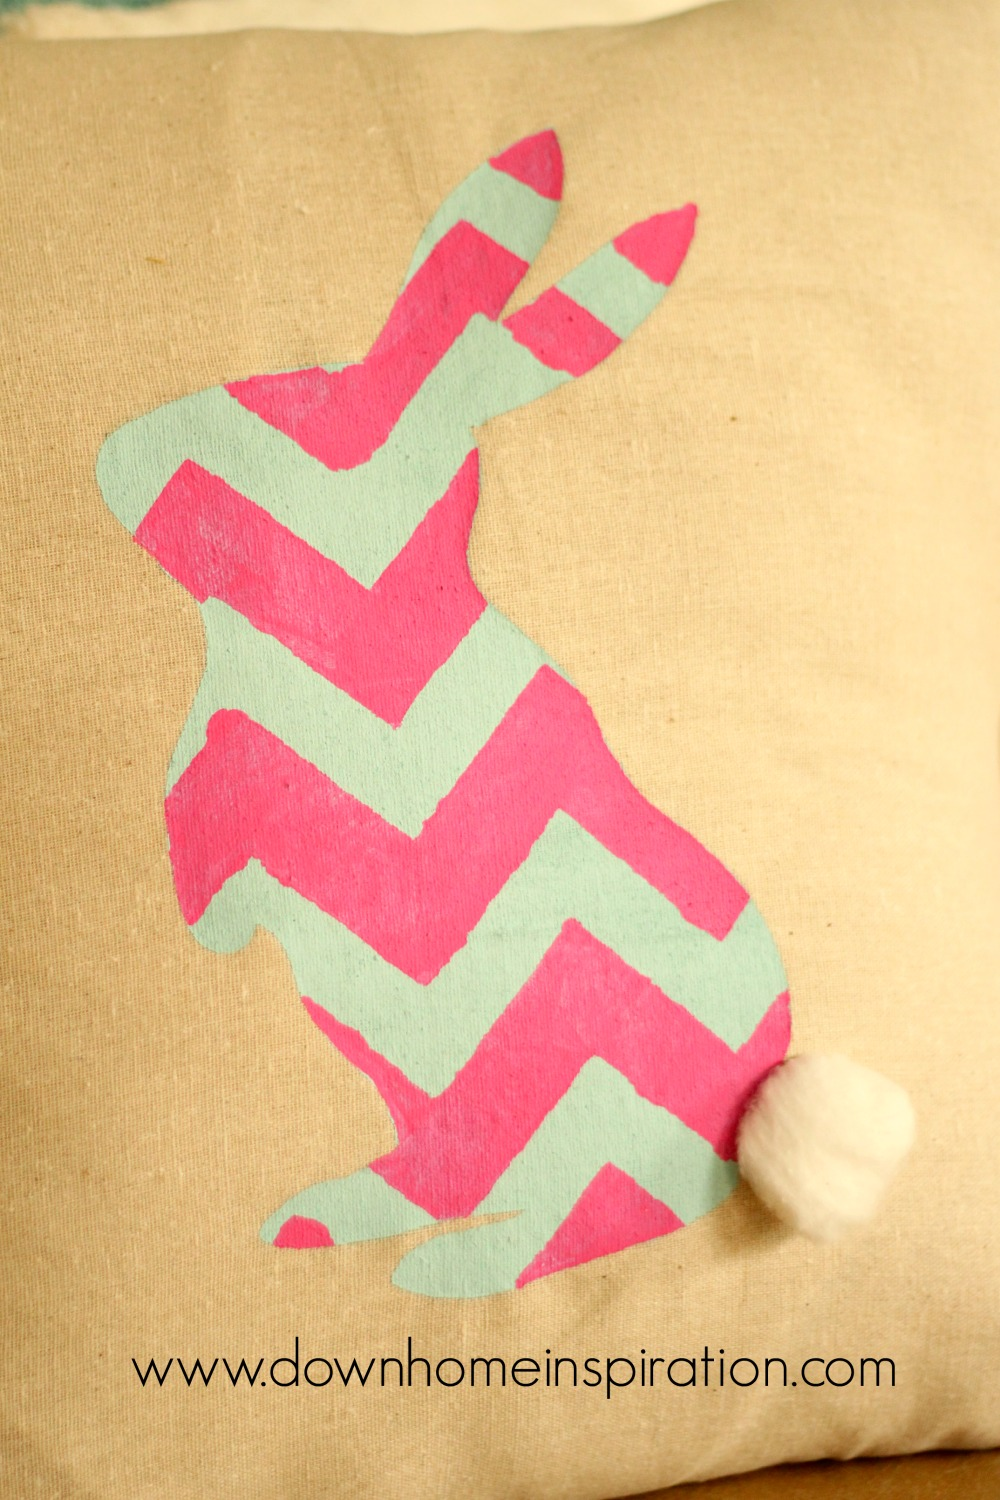 Burlap Bunny PIllow from Down Home Inspiration